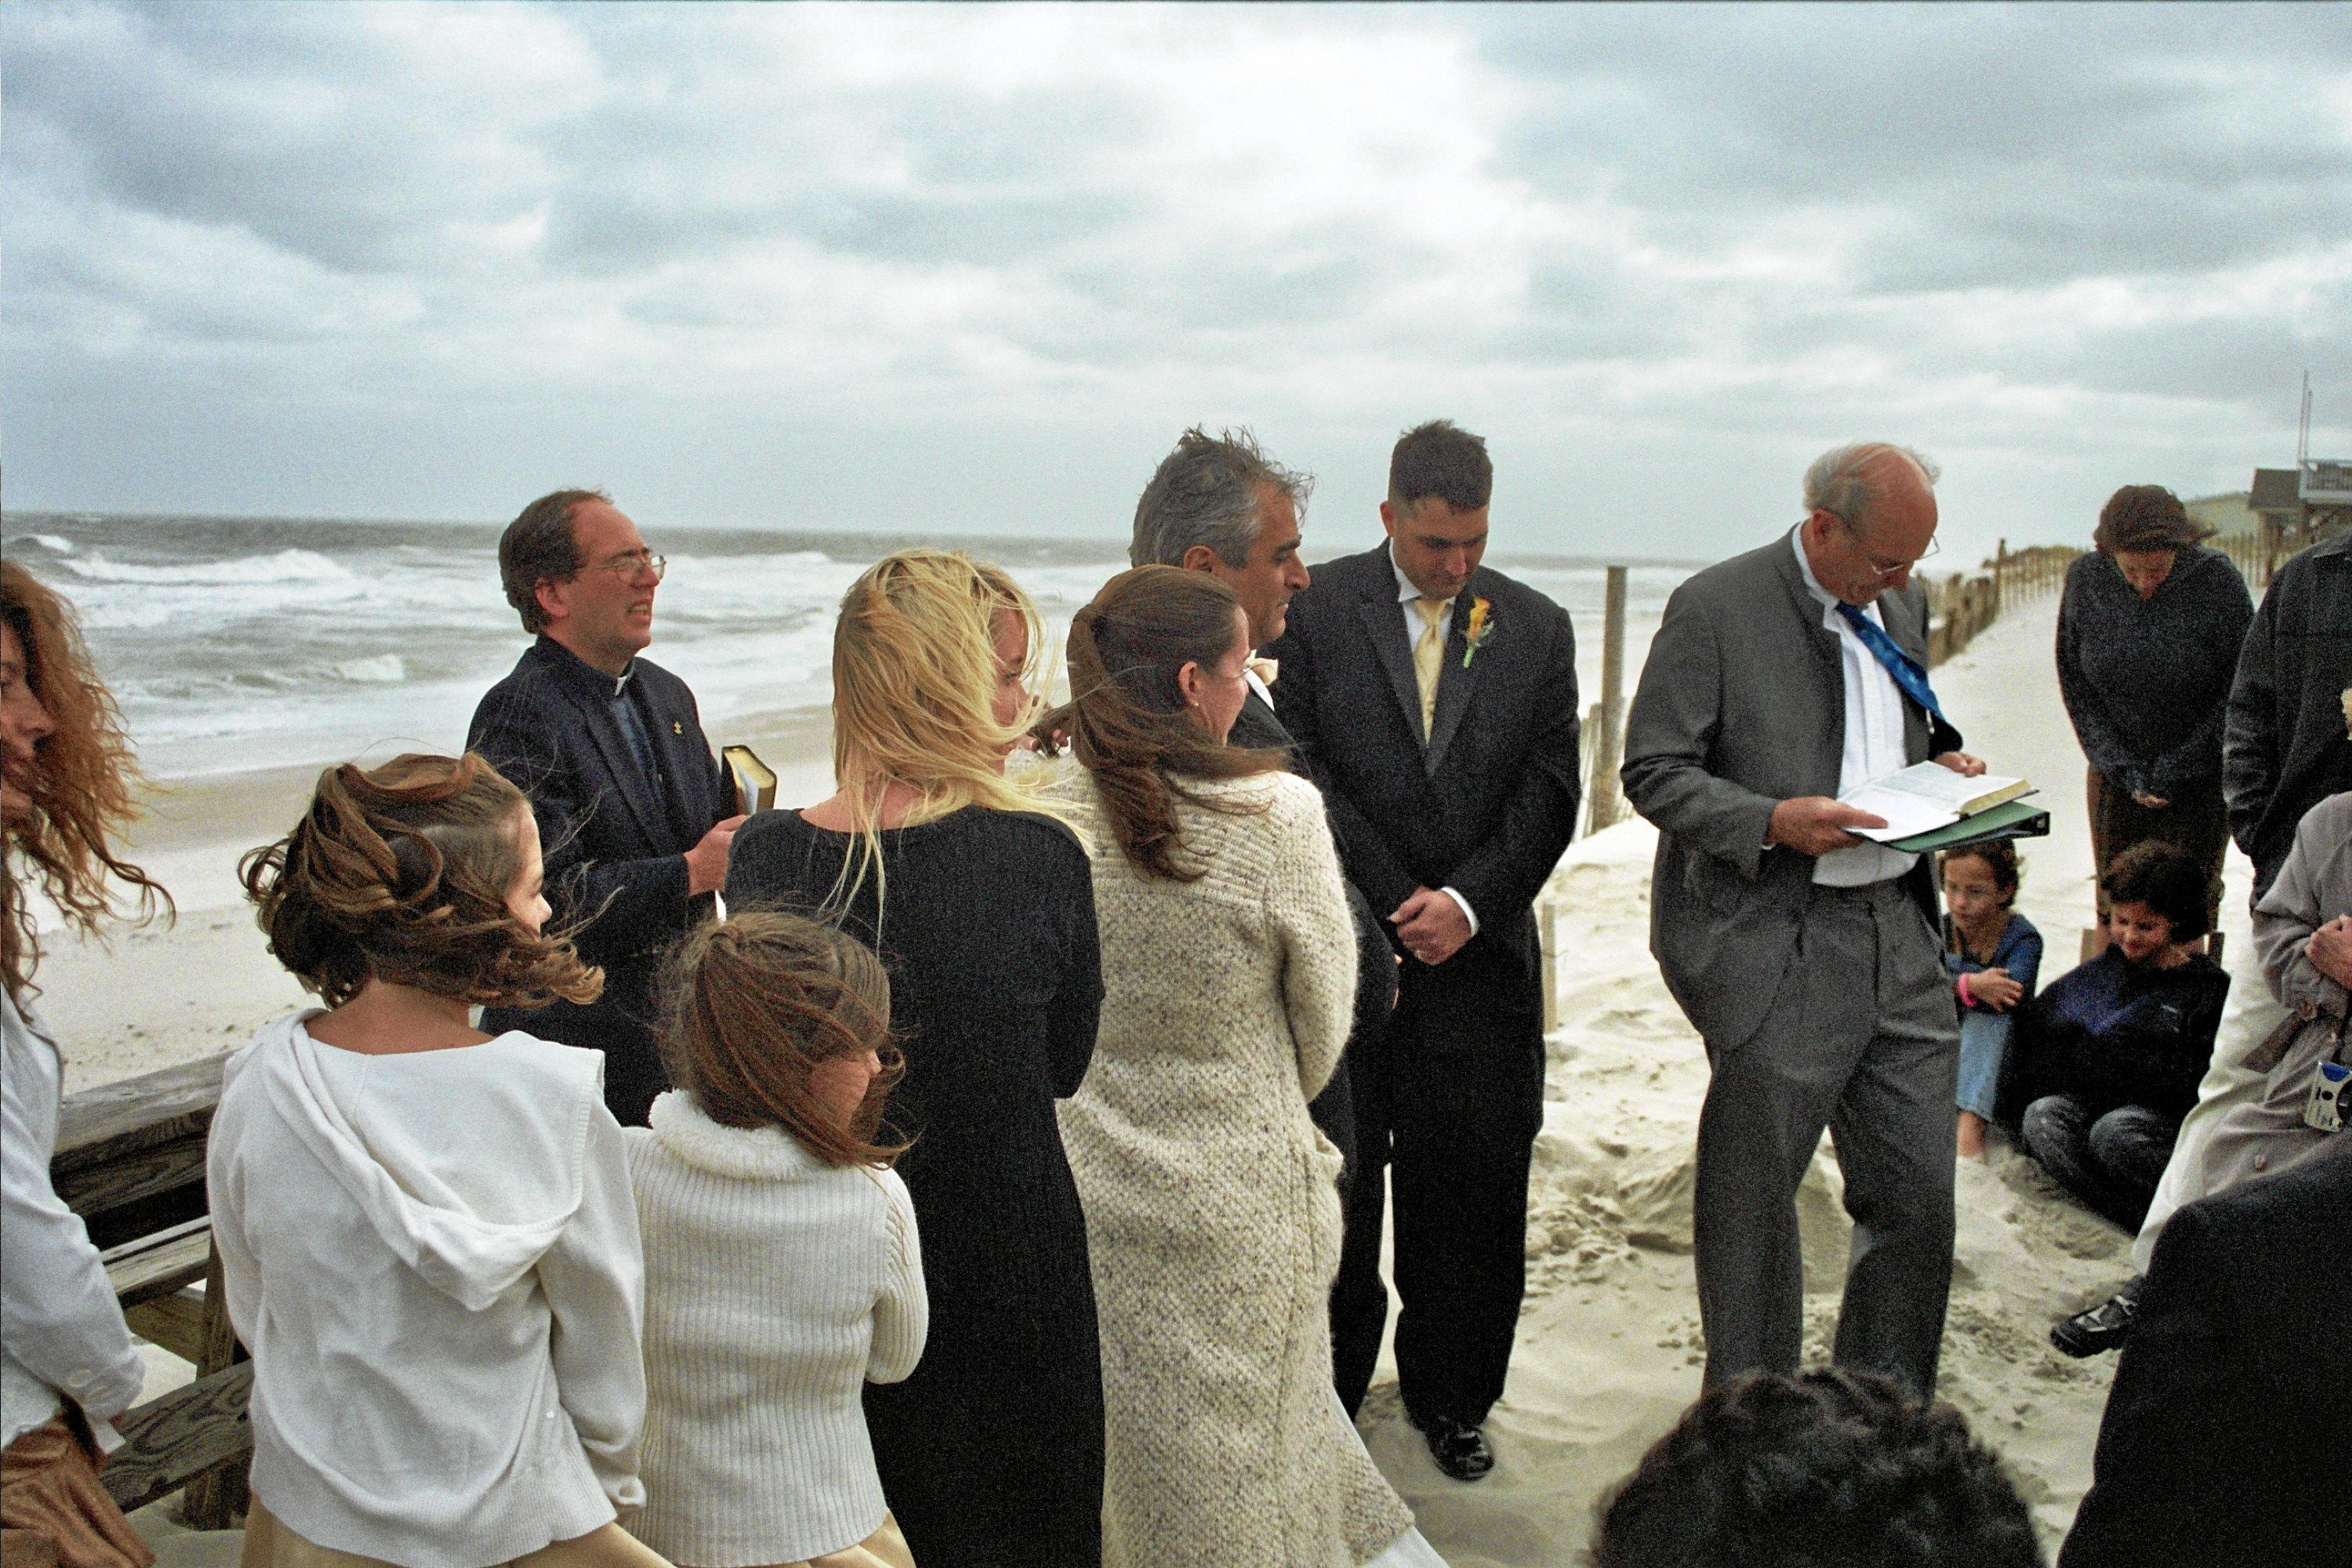 Weddings in New Jersey